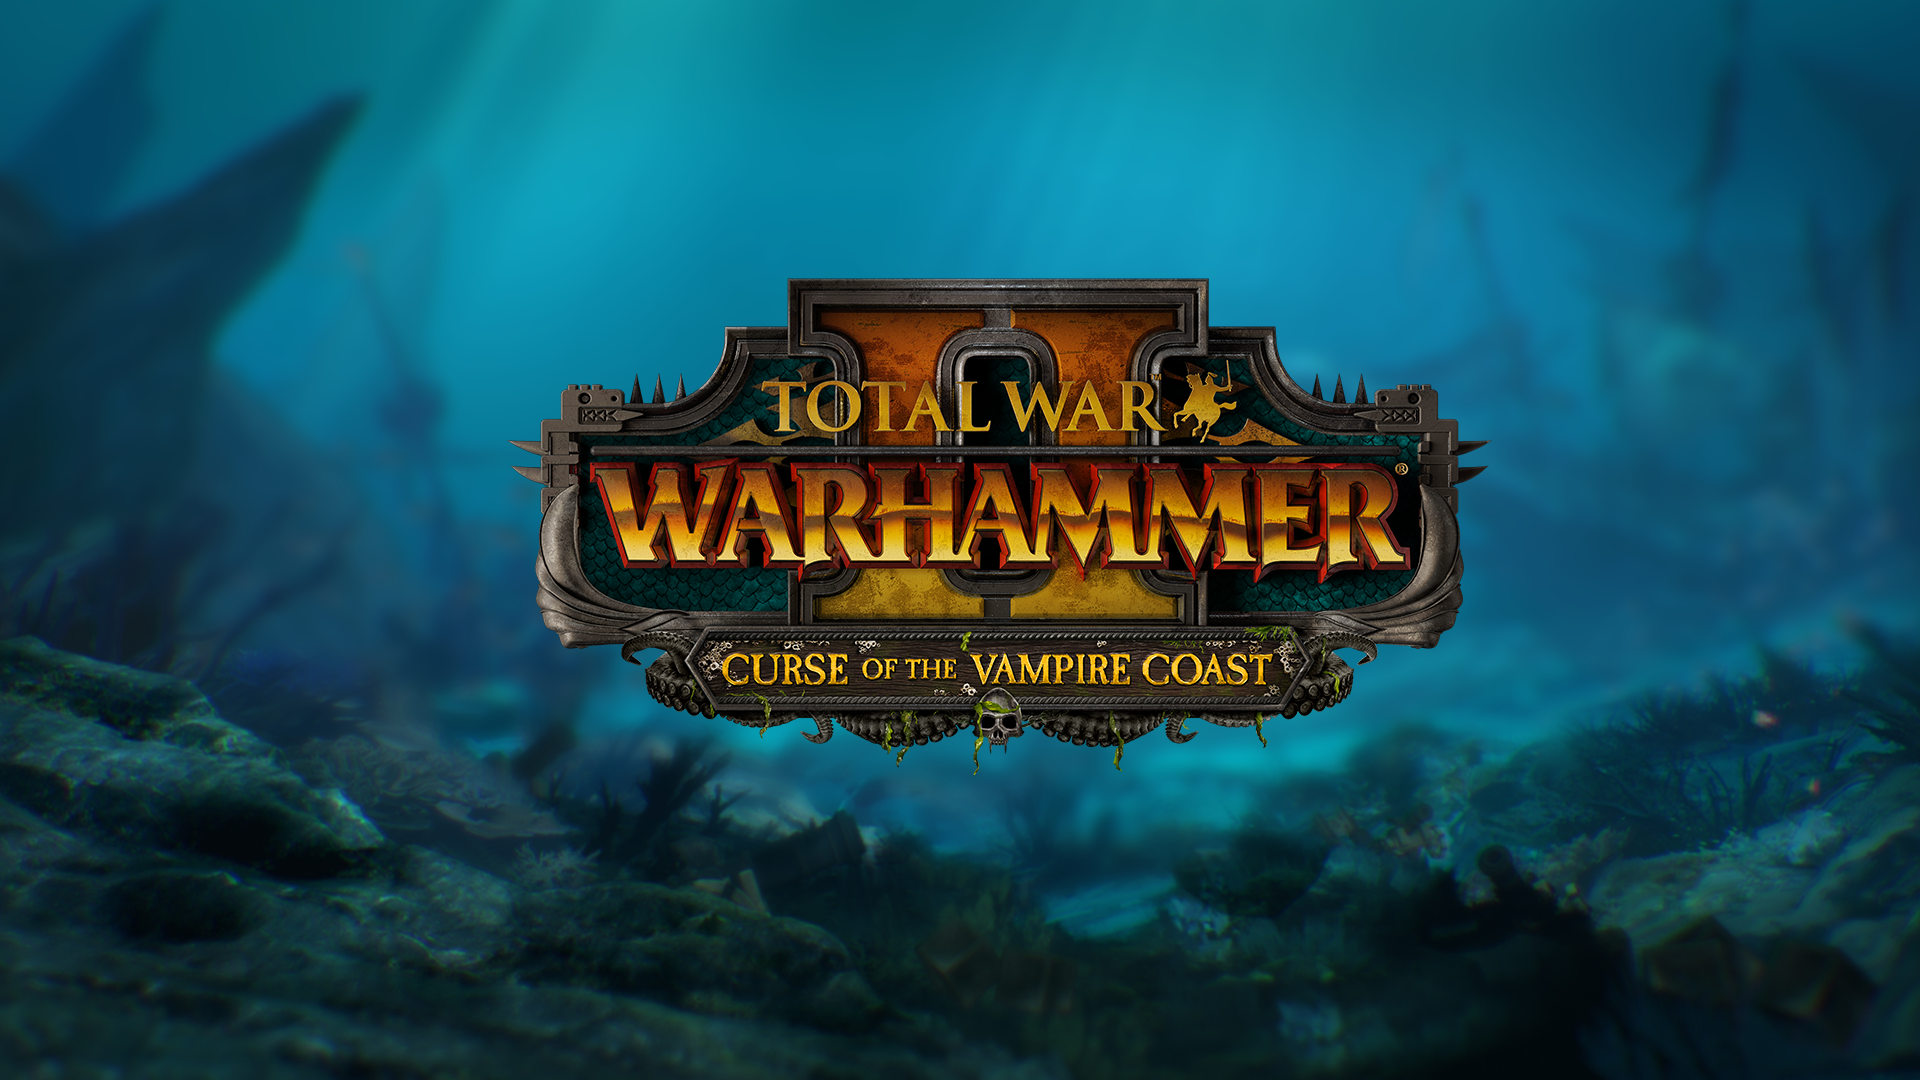 Total War: Warhammer 2 Meets Pirates of the Caribbean in